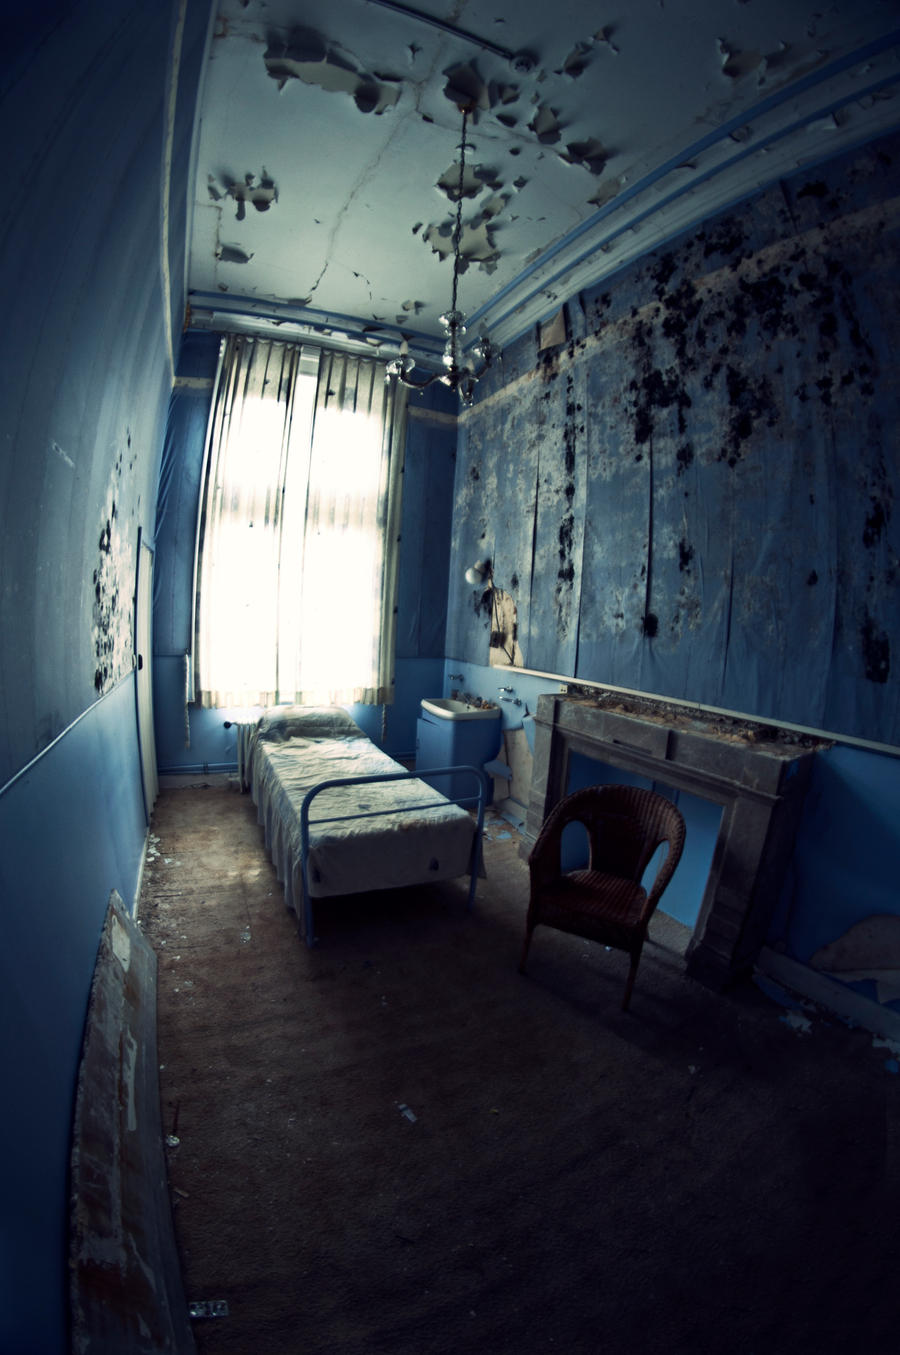 The Blue Room by kKimago